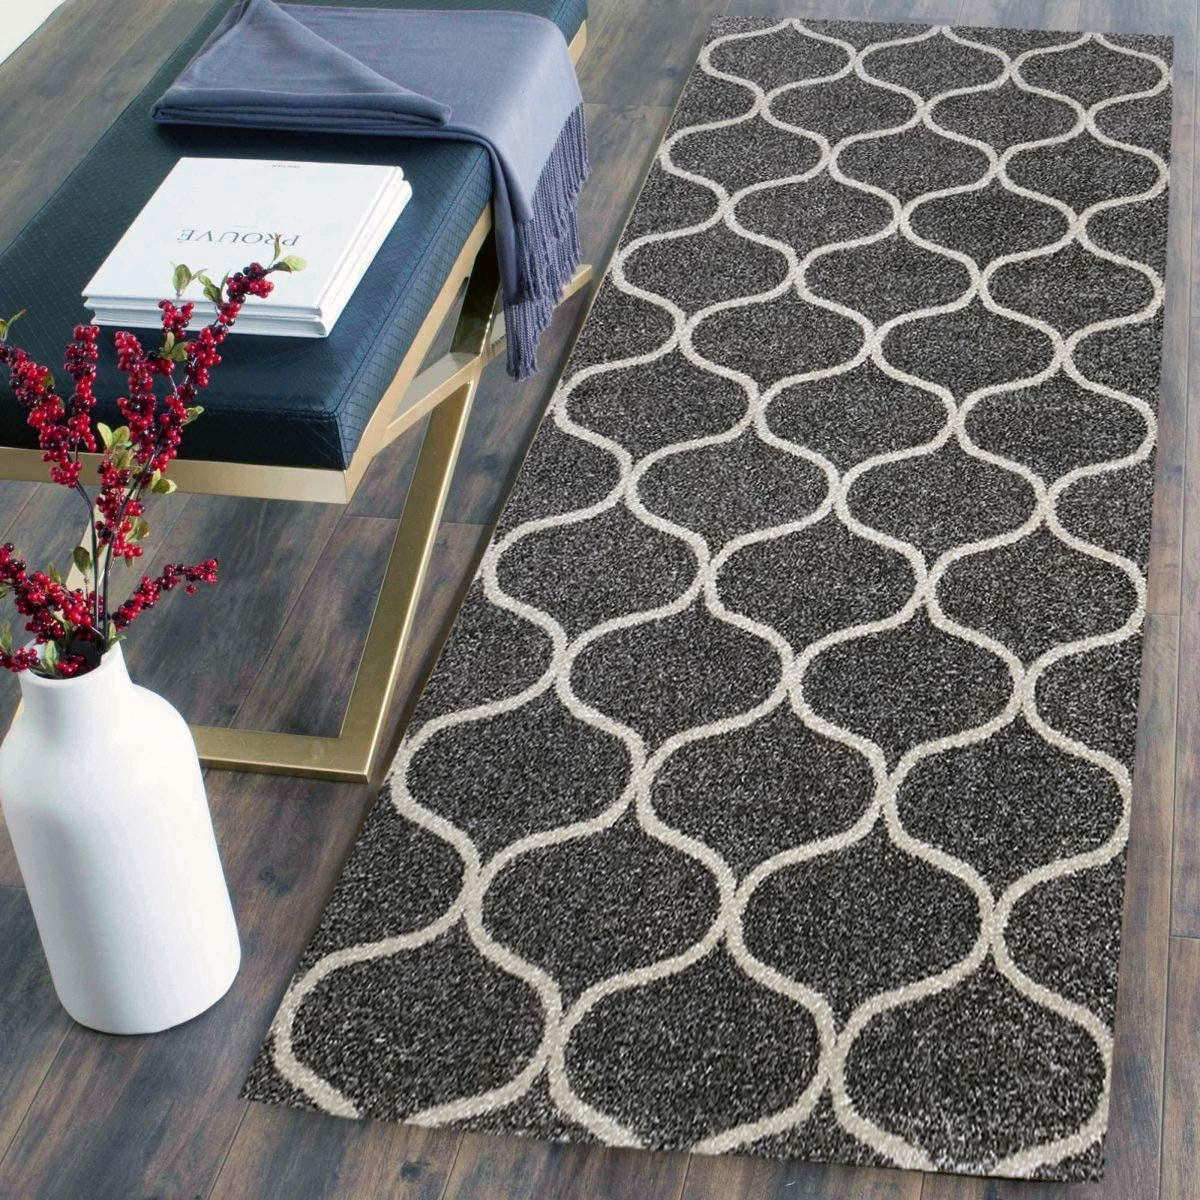 Pyramid Decor COSI Collection Easy Clean Stain and Fade Resistant Grey Ottoman Area Rug for Bedroom Kitchen Dining Living Room, Modern Geometric Space Design Size 2 X 5 Feet